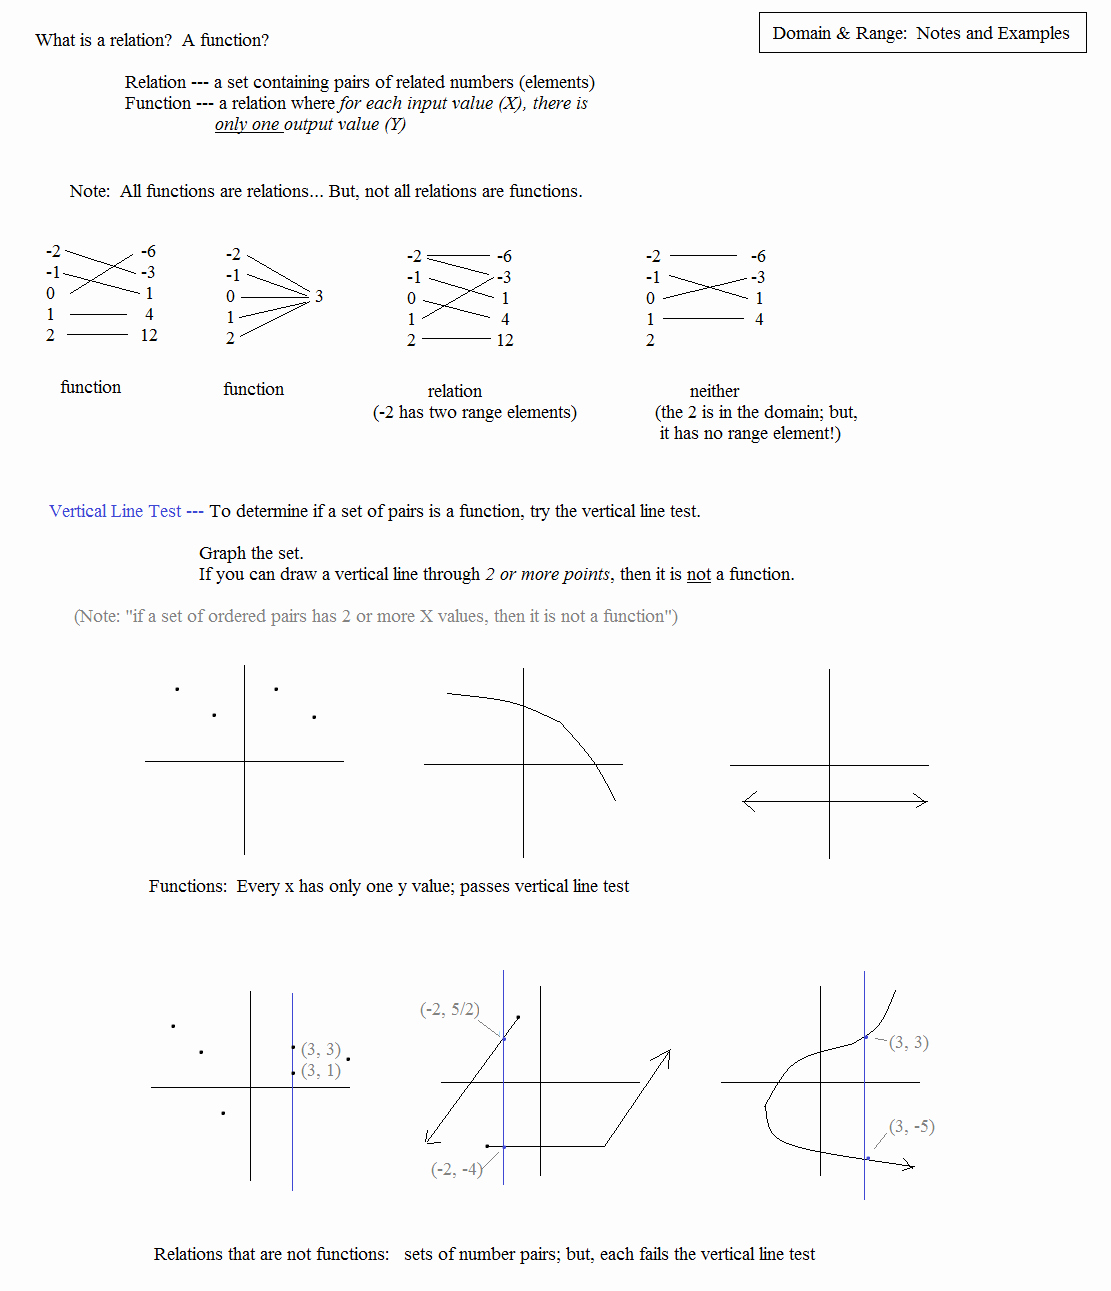 Relations and Functions Worksheet New Math Plane Domain & Range Functions & Relations